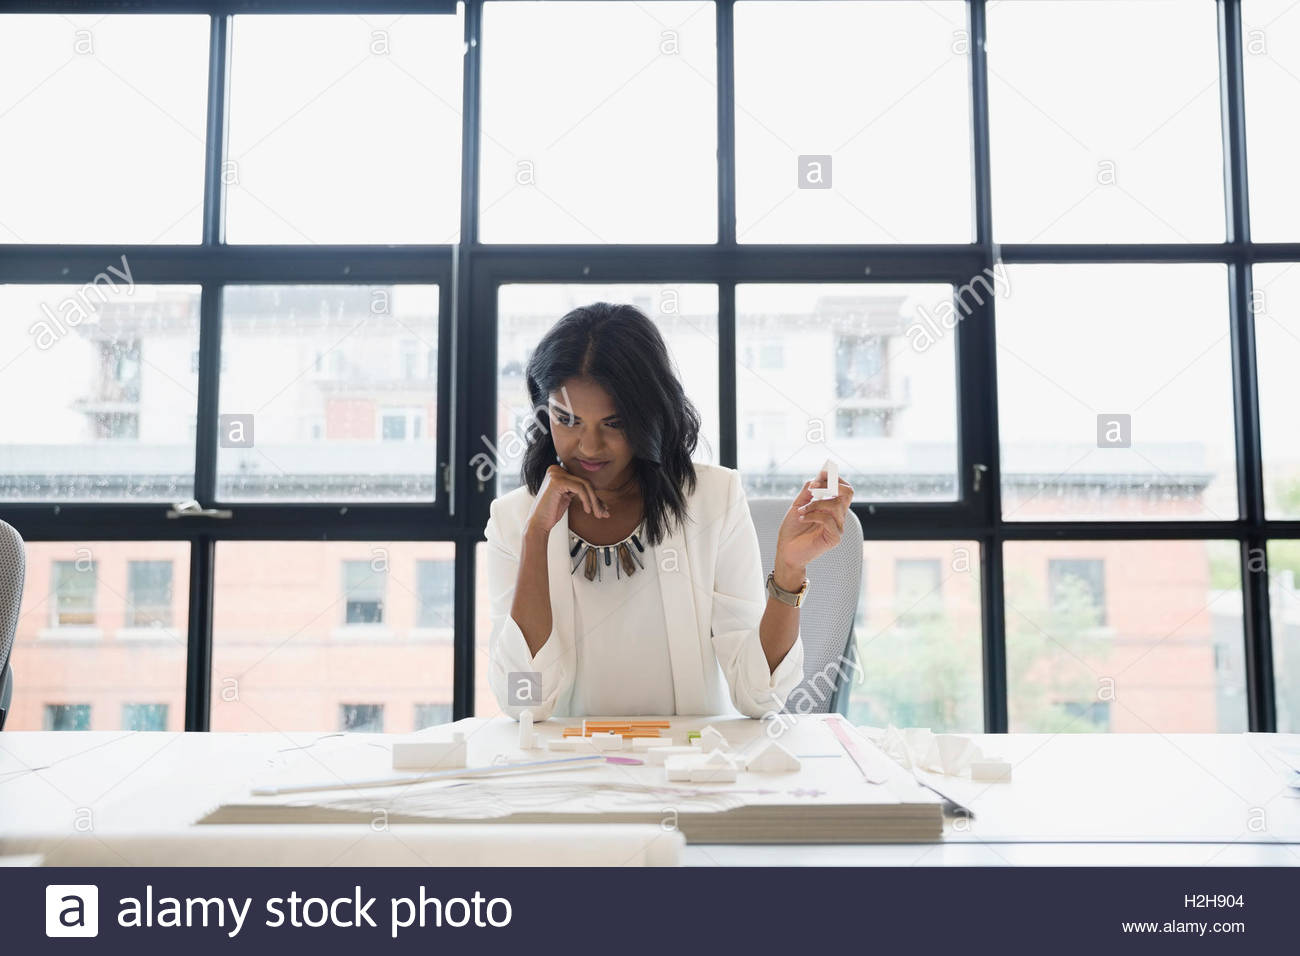 Female architect reviewing model at table in office - Stock Image